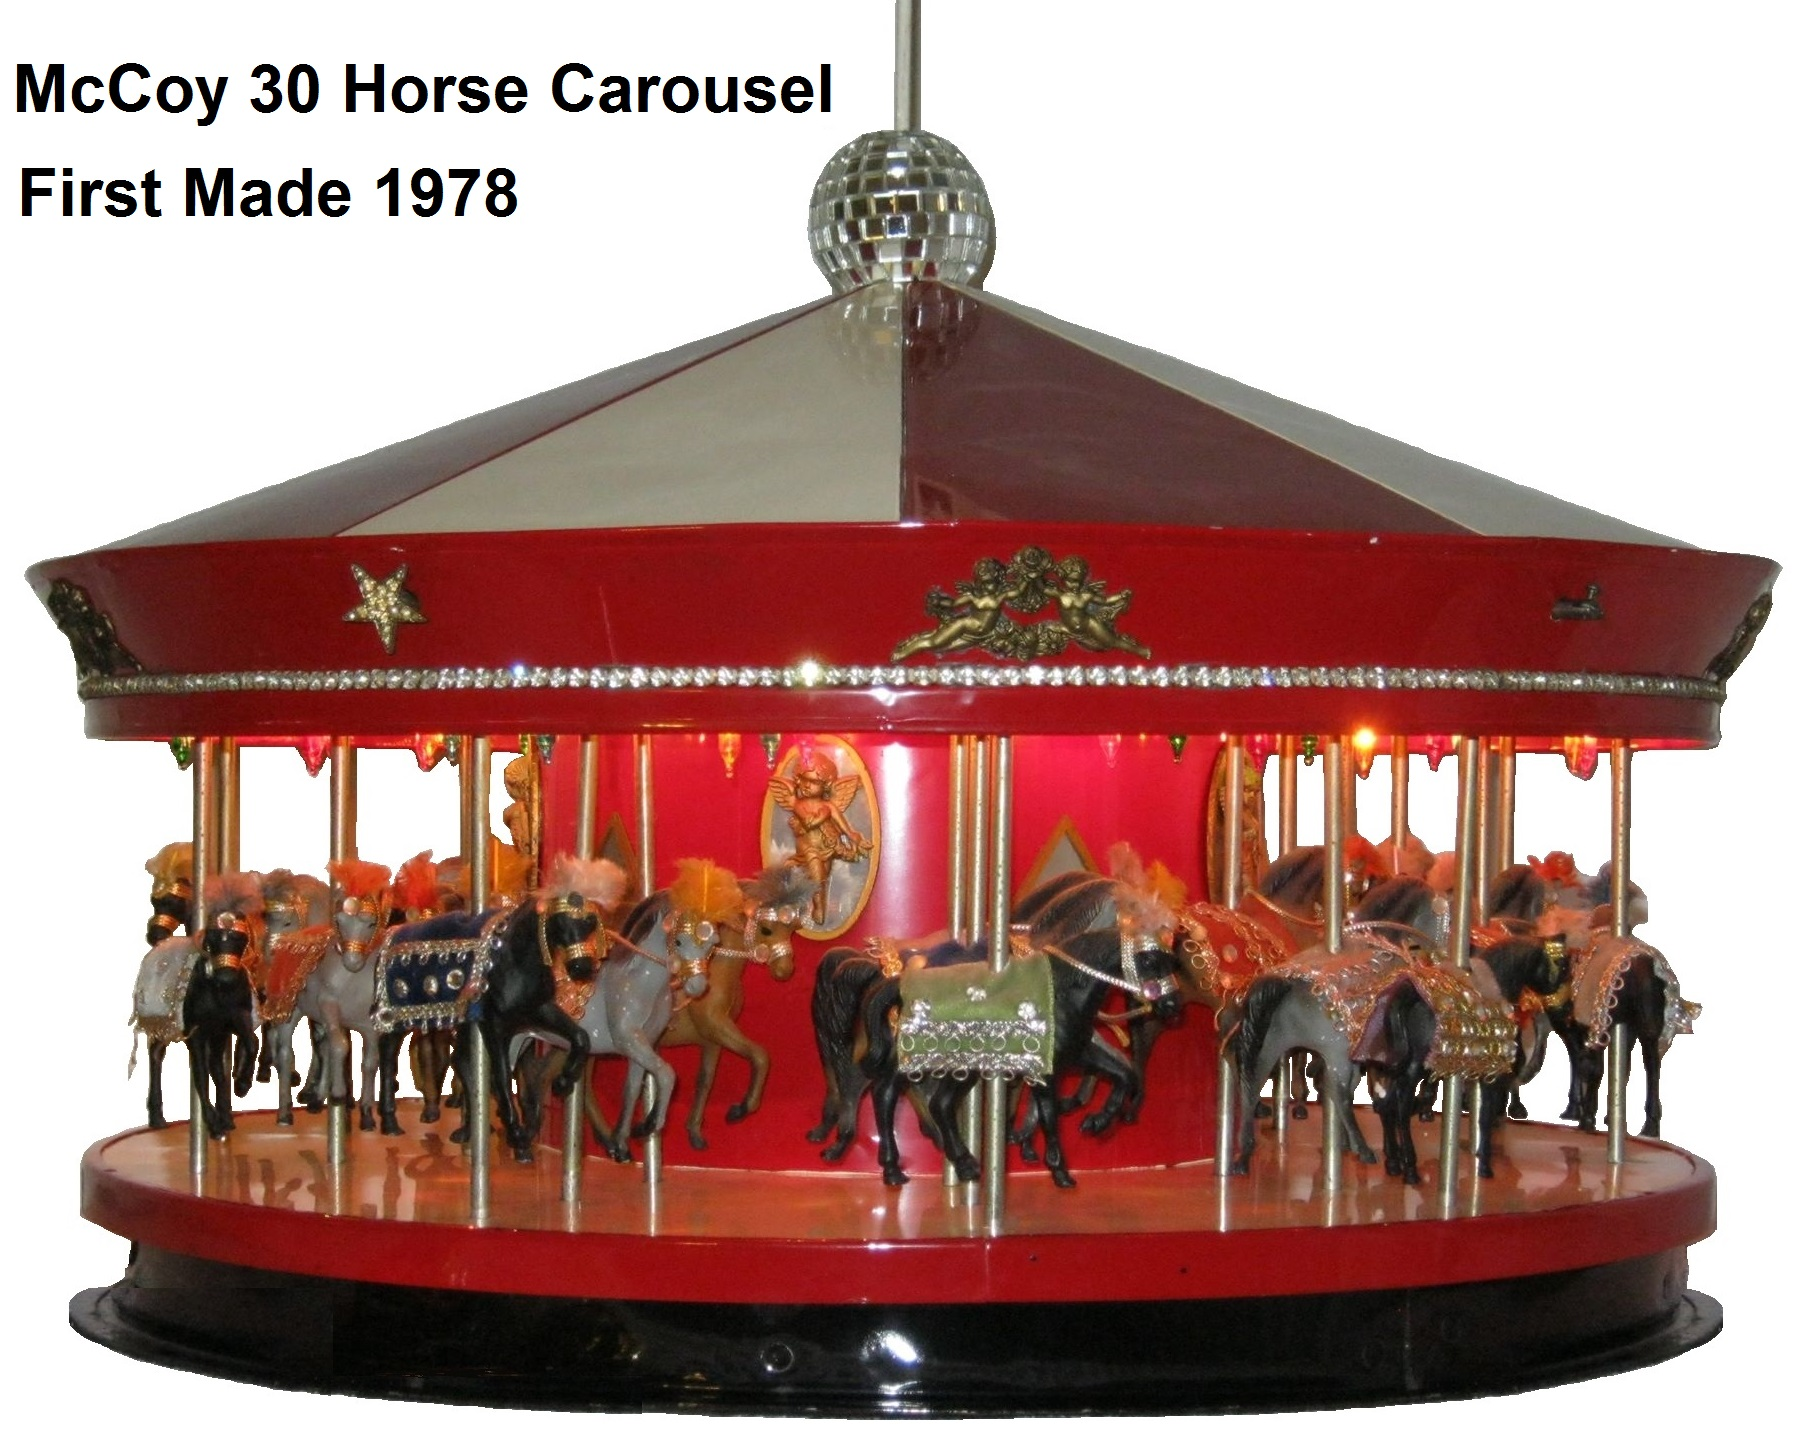 McCoy 30 horse carousel first made 1978